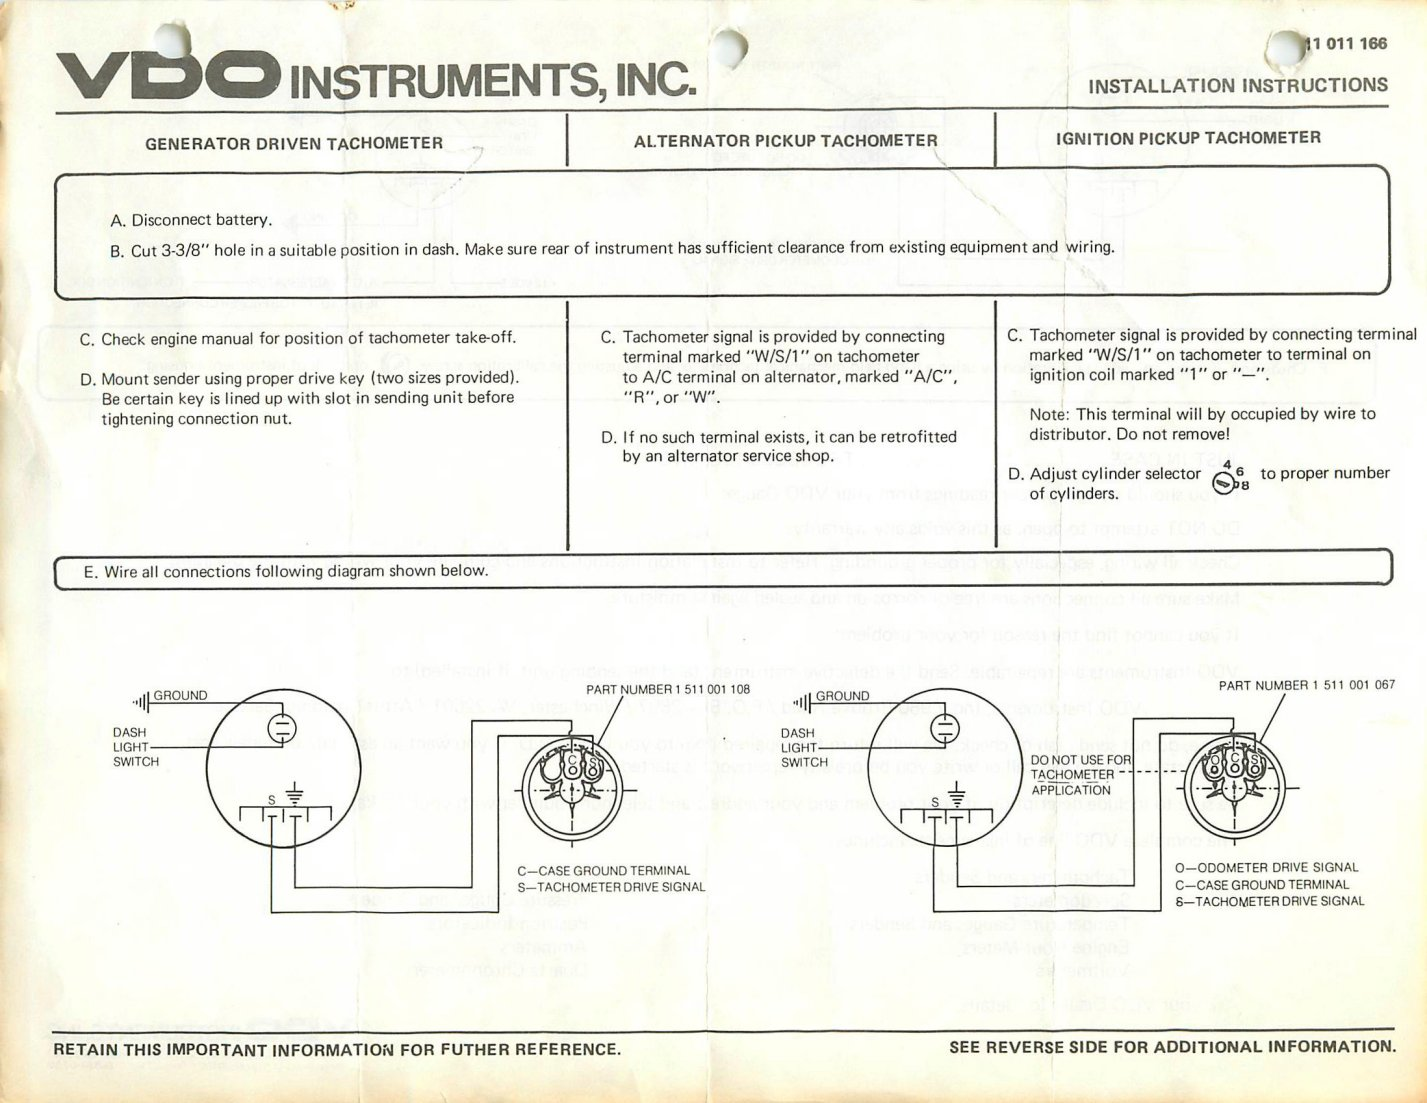 Tachometer Wiring Auto Electrical Wiring Diagram 1994 Jeep Grand Cherokee  Oil Sending Unit Tachometer Wiring Diagram 1994 Jeep Grand Cherokee